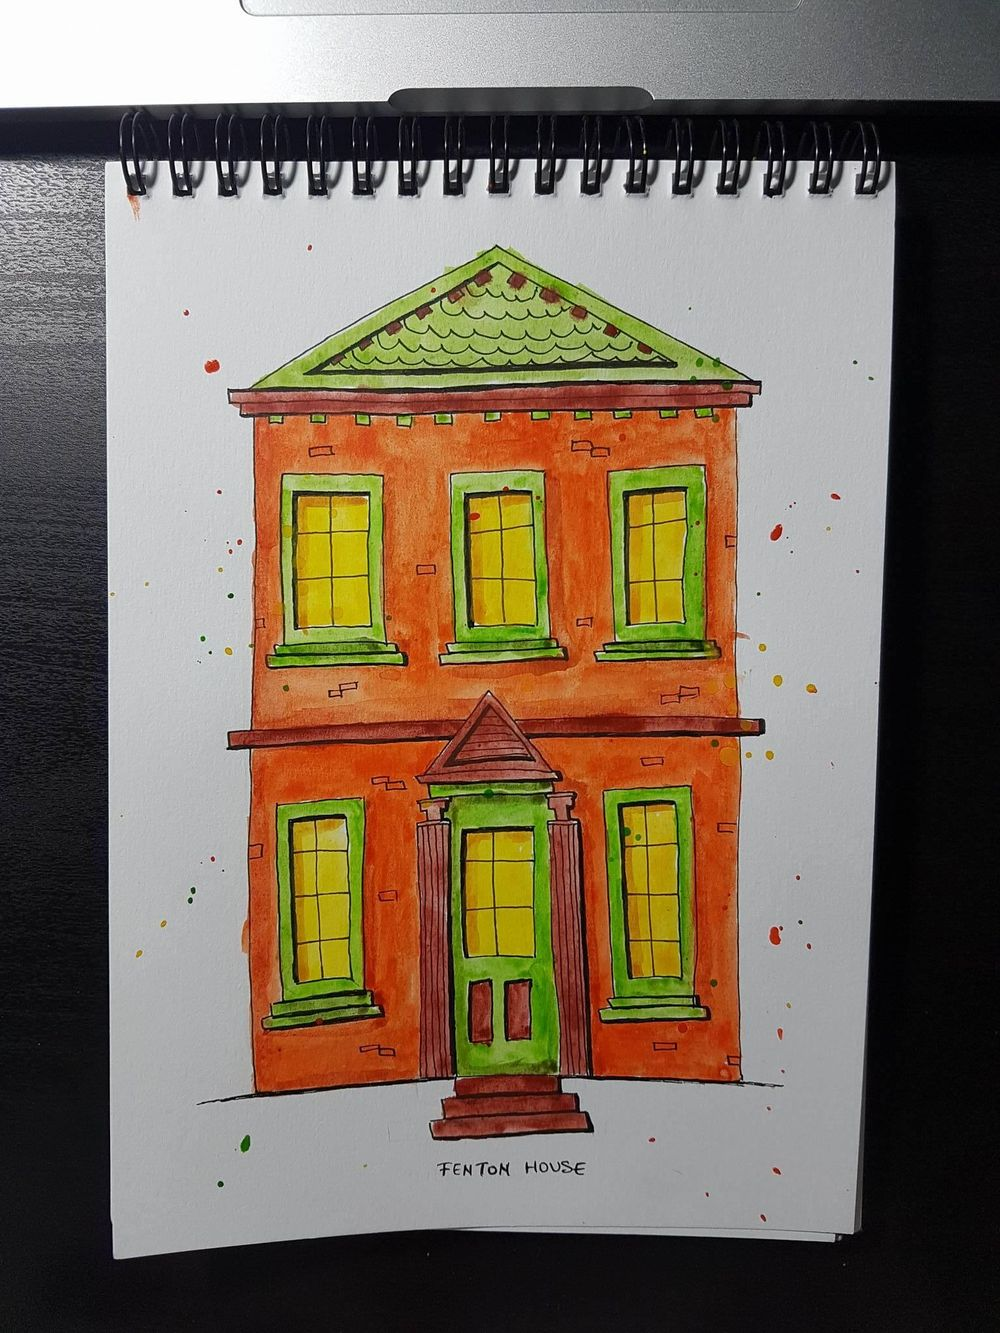 Fenton House  - image 1 - student project